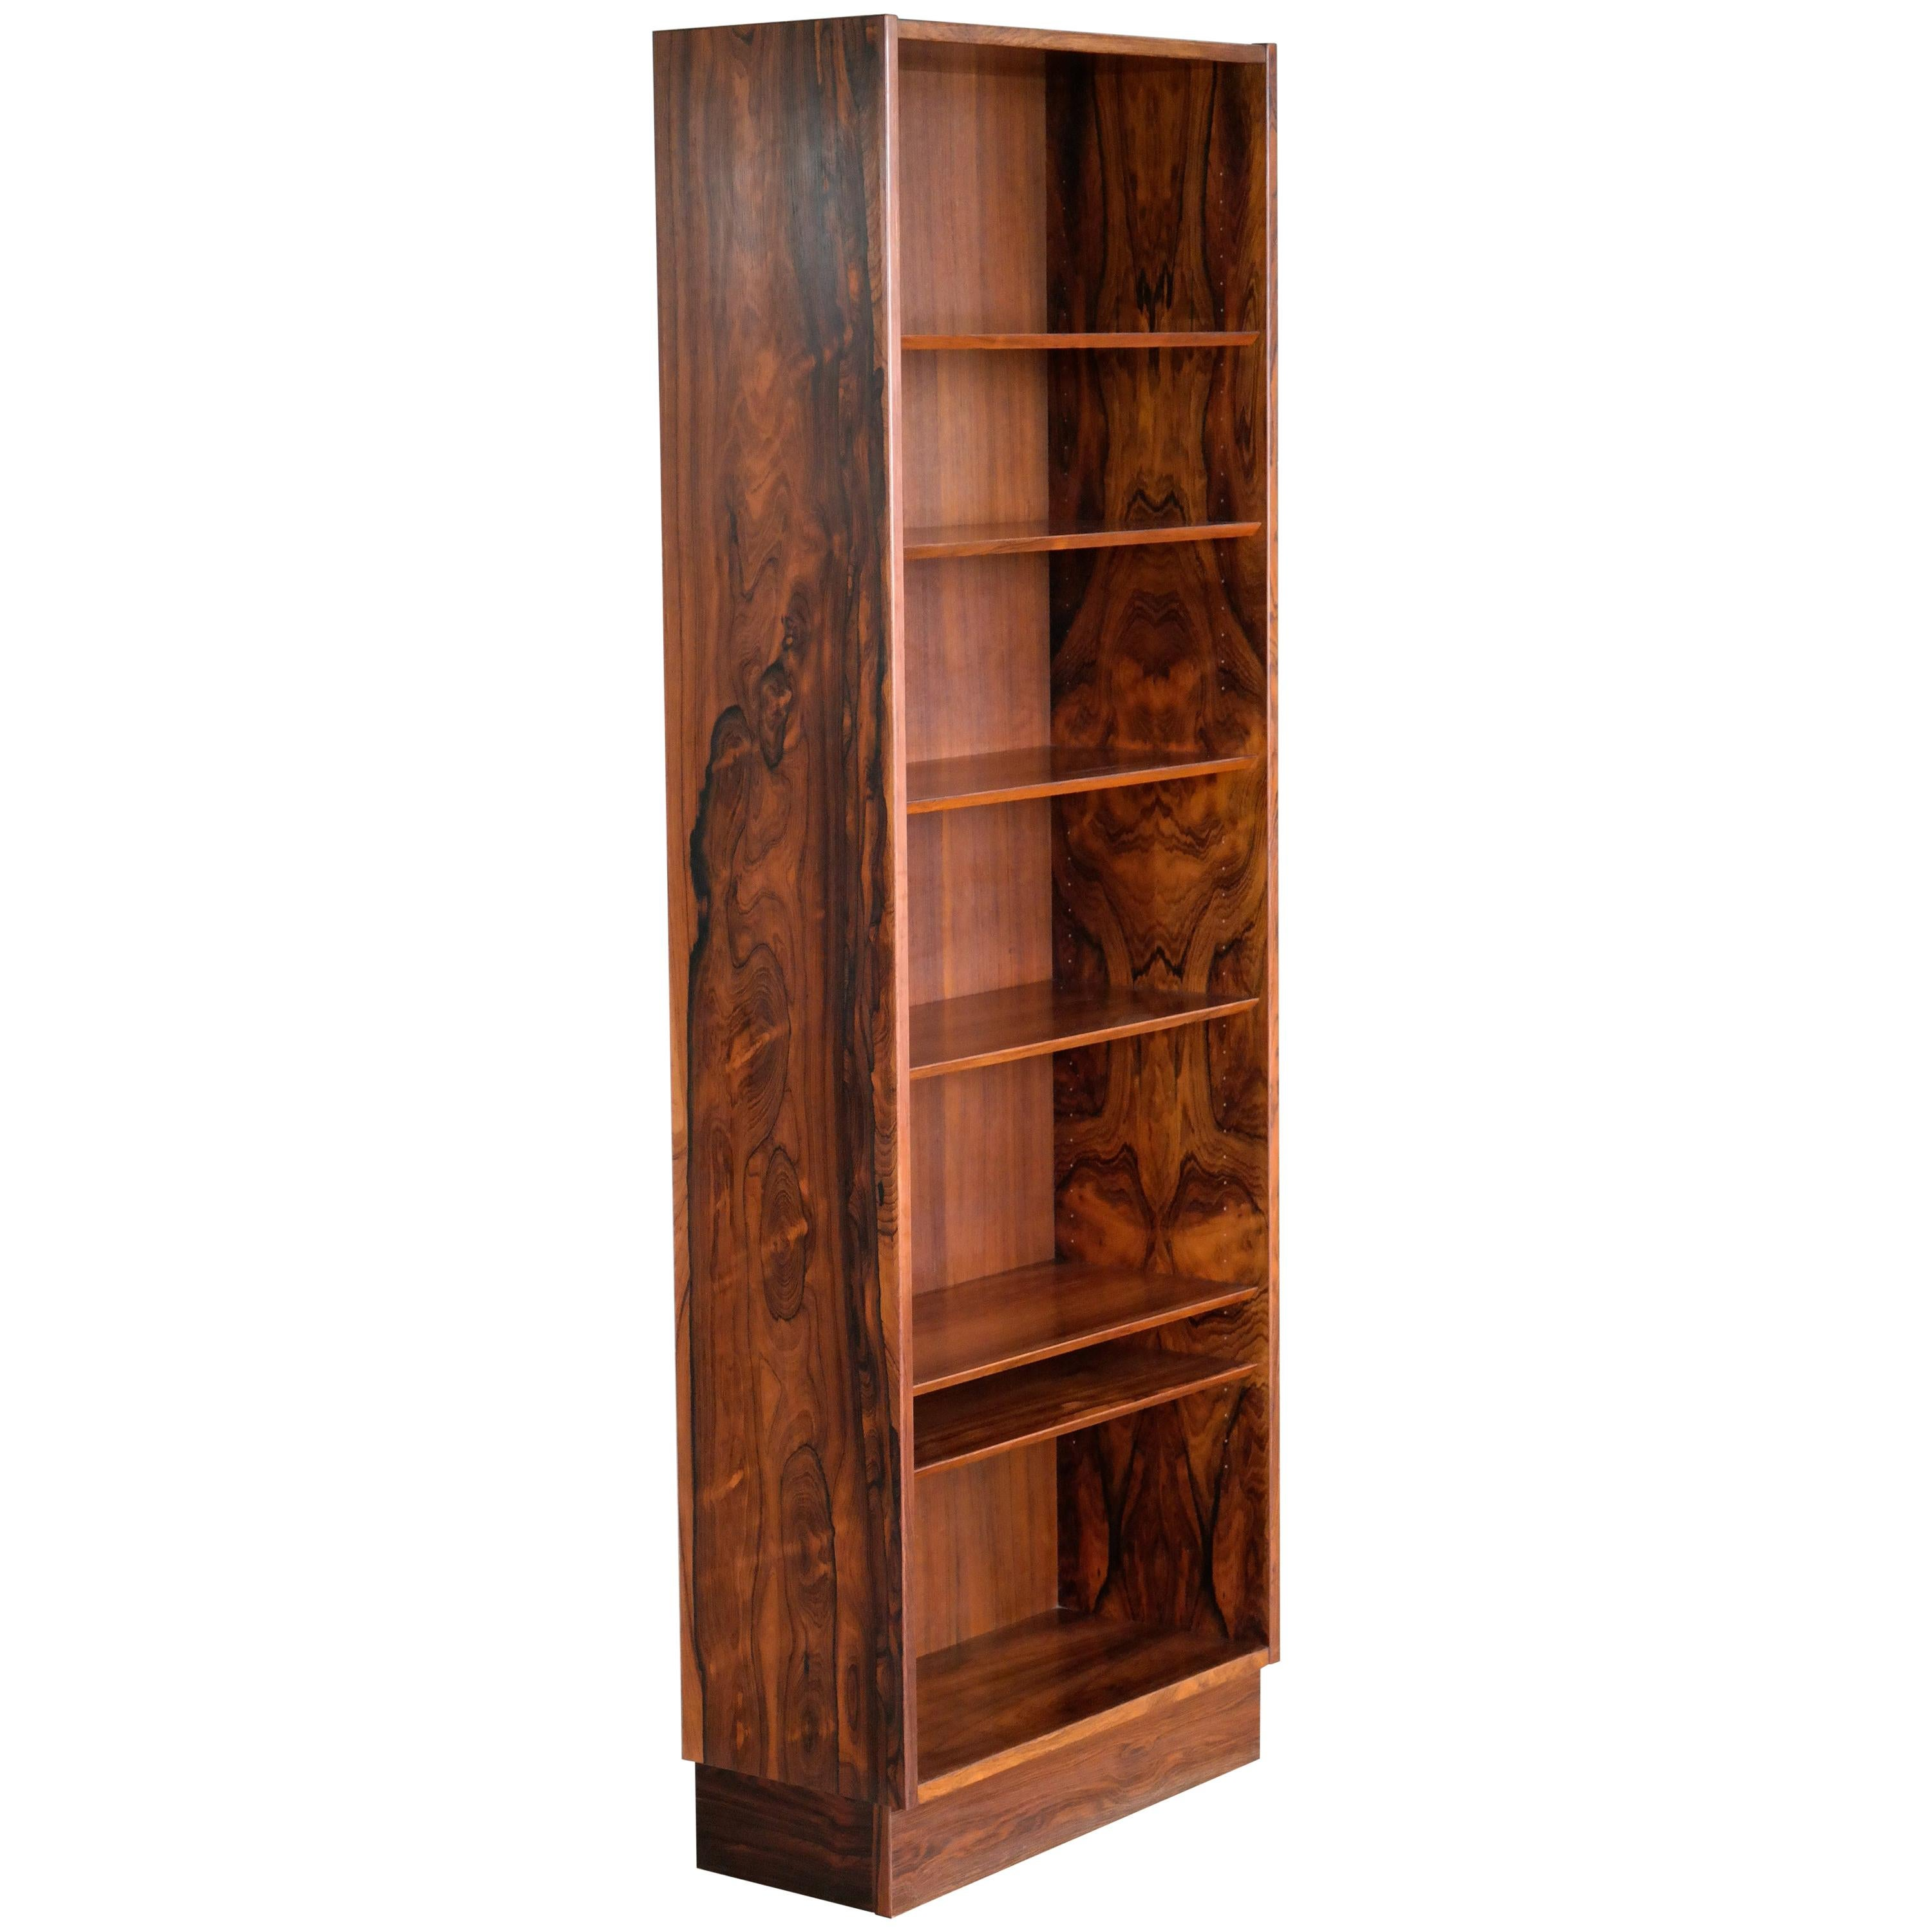 Danish Midcentury Bookcase In Brazilian Rosewood By Poul